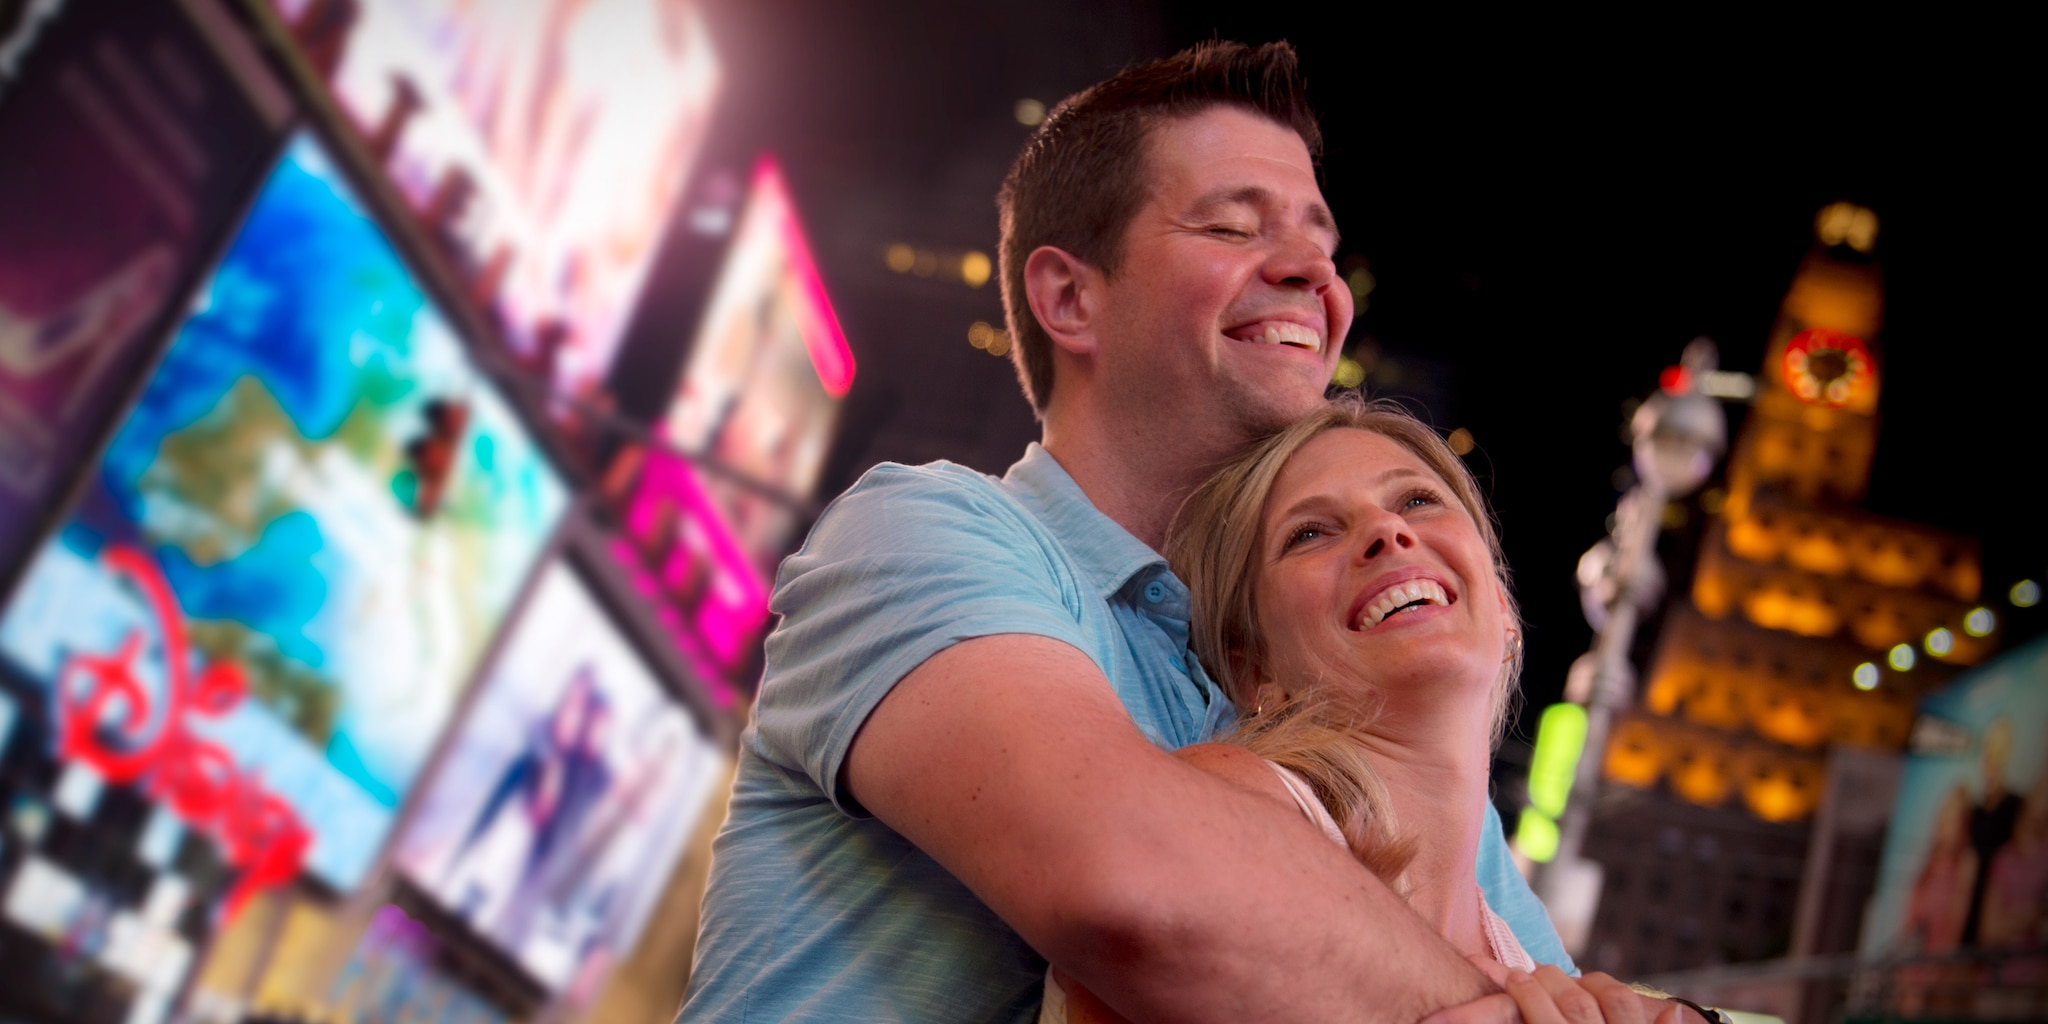 Couple enjoying Times Square at night